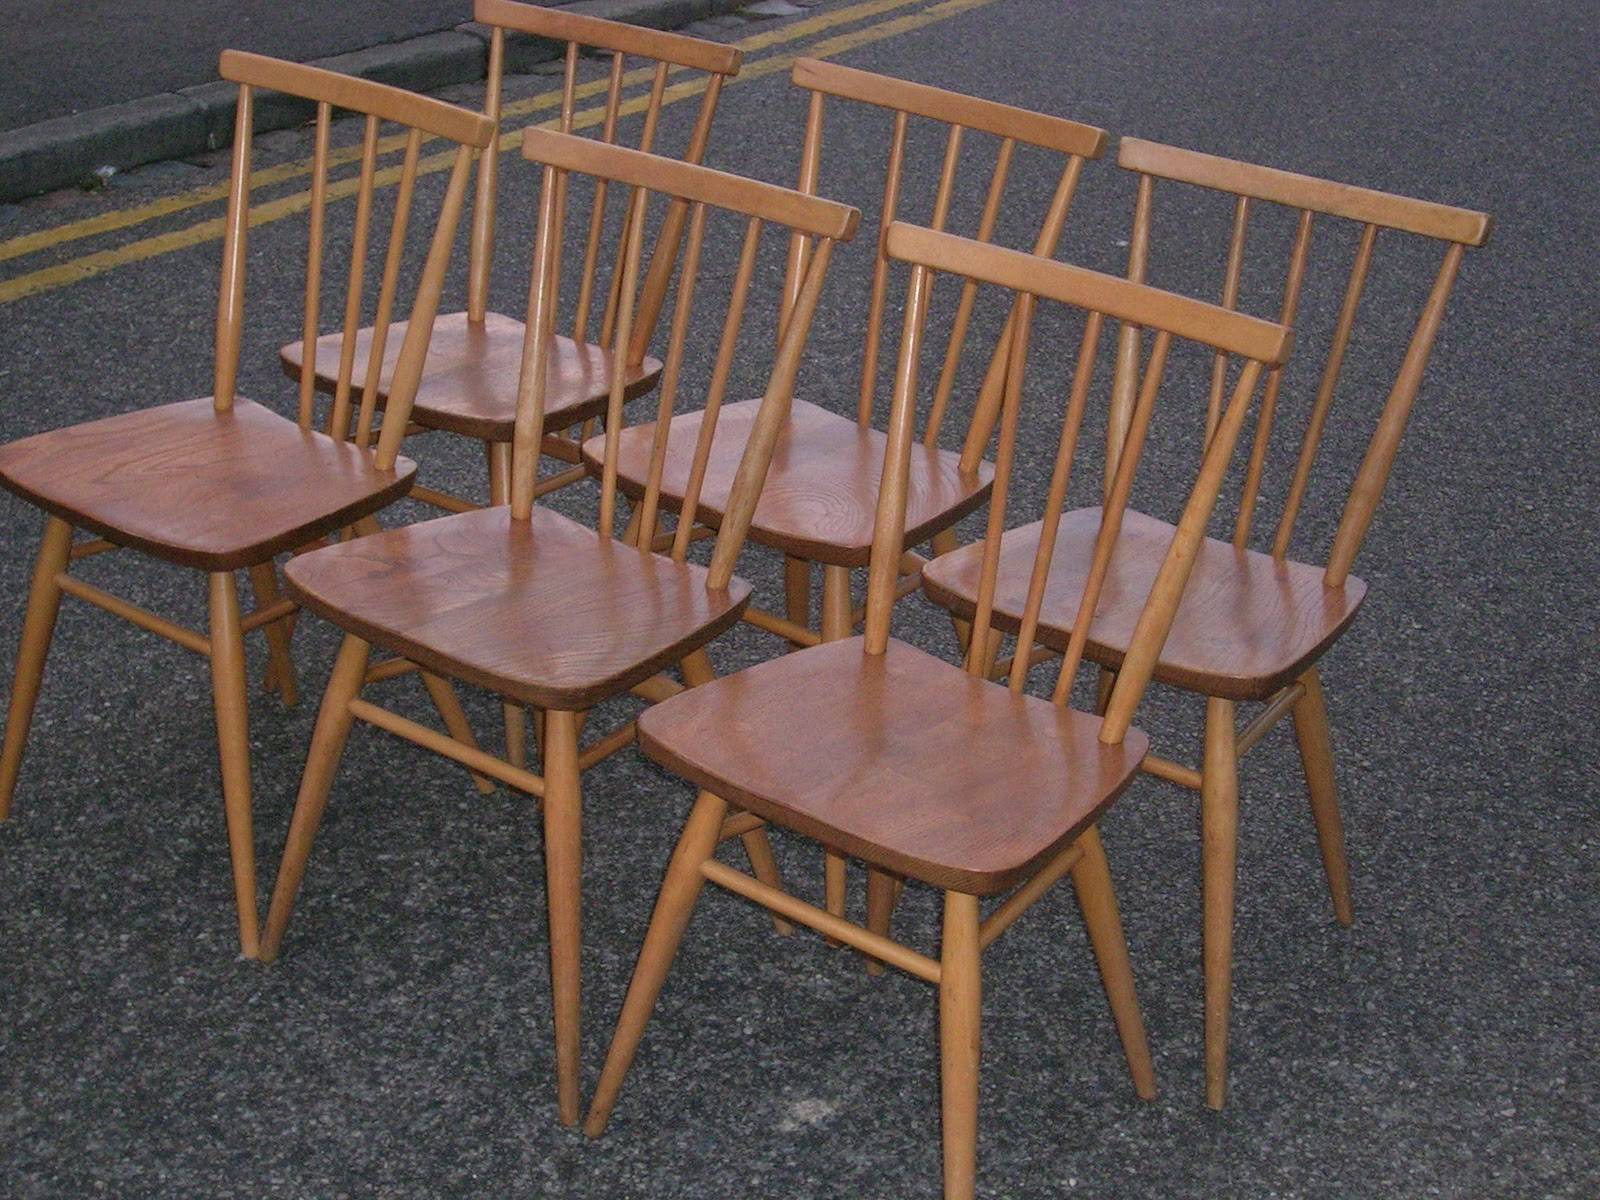 Retrorummage2010 60s Ercol Spindleback Chairs sold